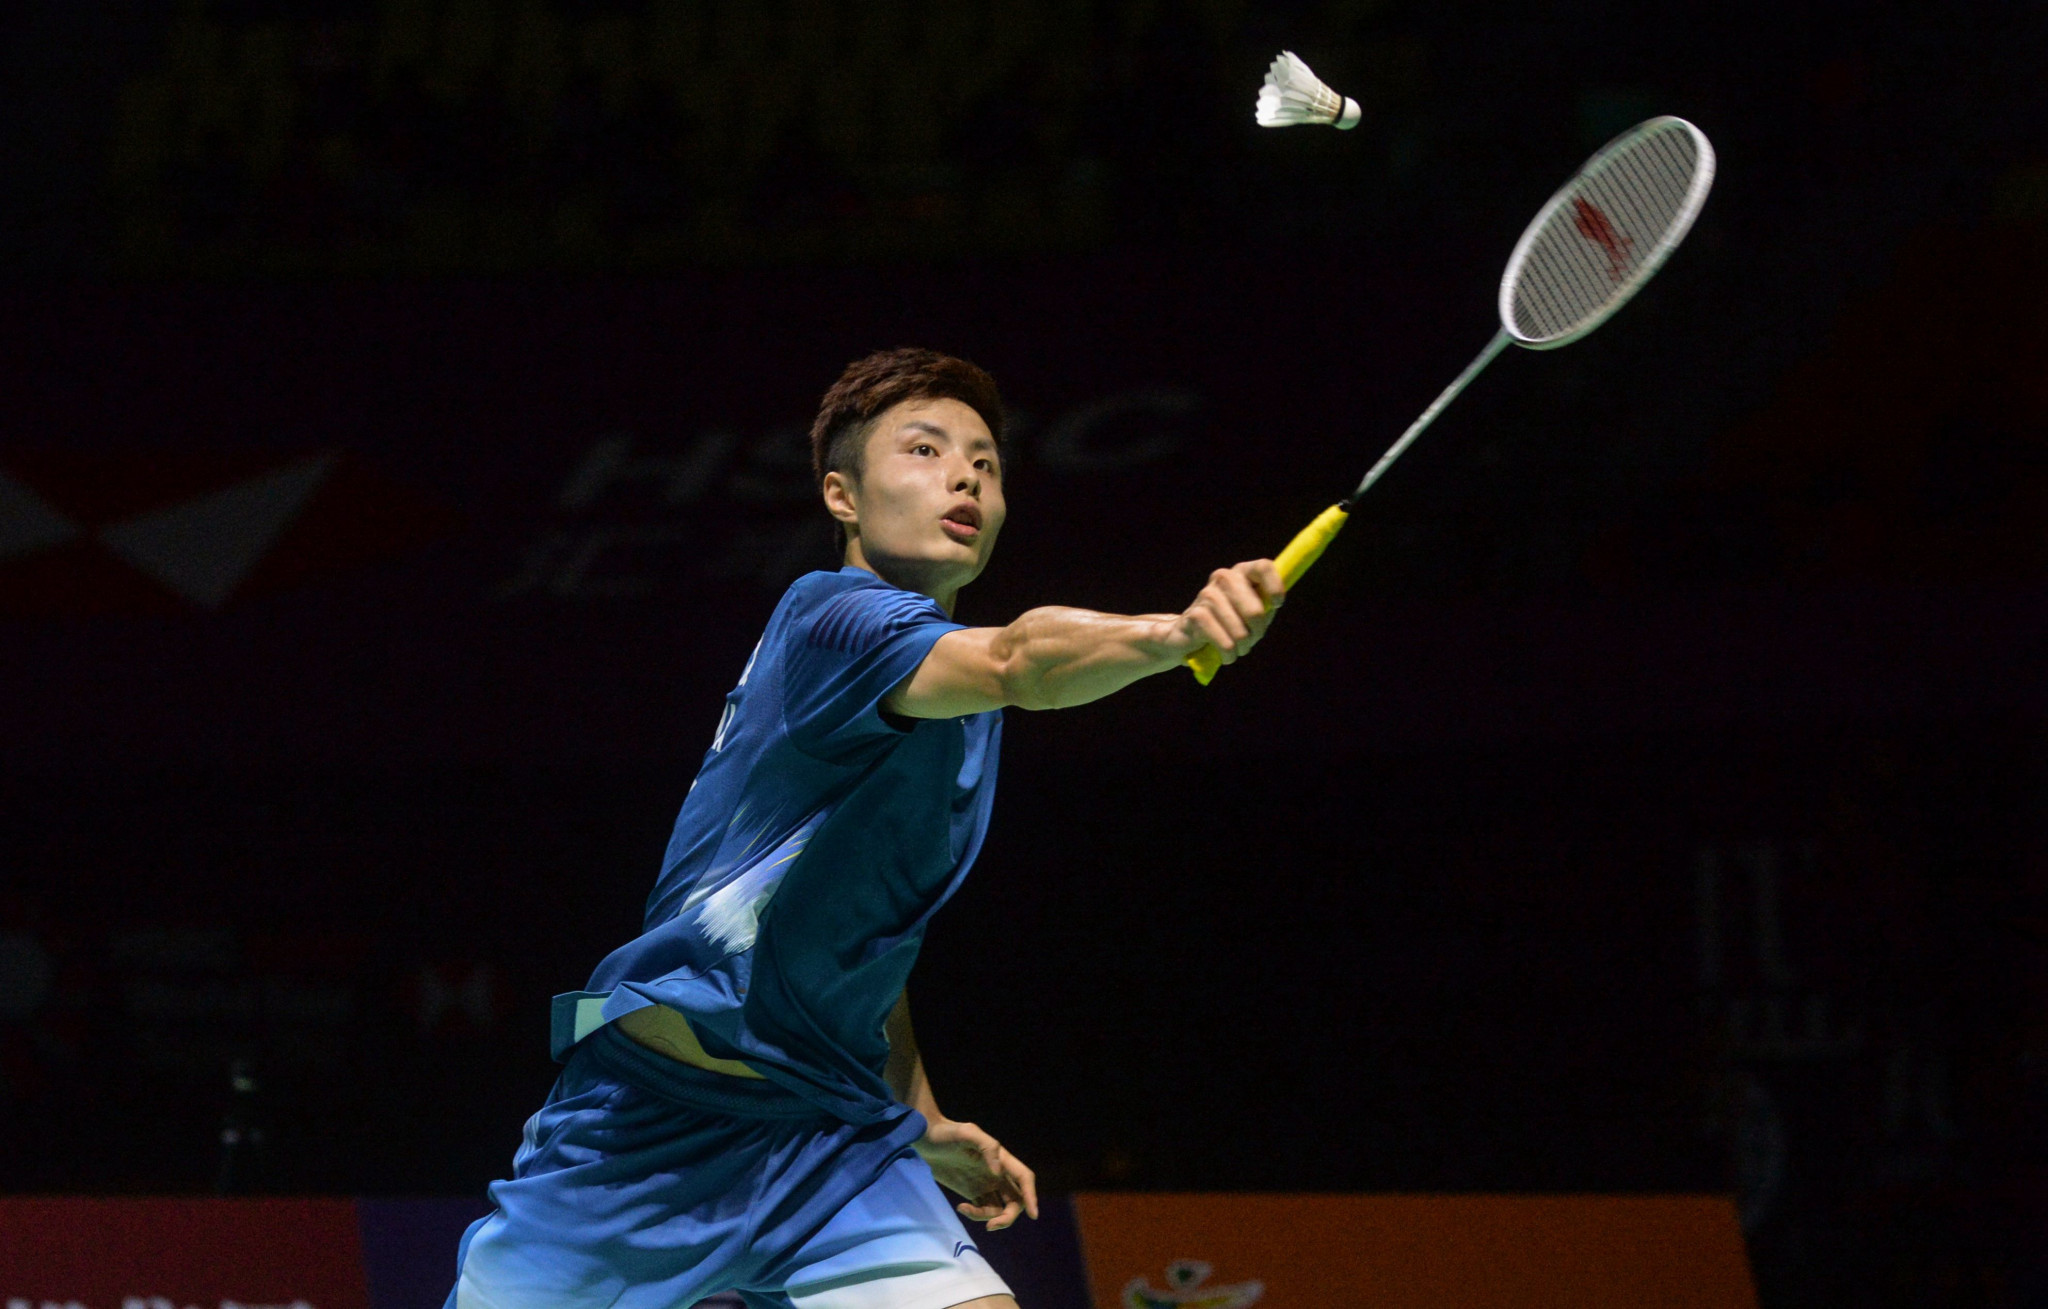 China's second seed Shi Yuqi was forced to concede his first round match at the BWF Hong Kong Open to local favourite Lee Cheuk Yiu because of injury ©Getty Images